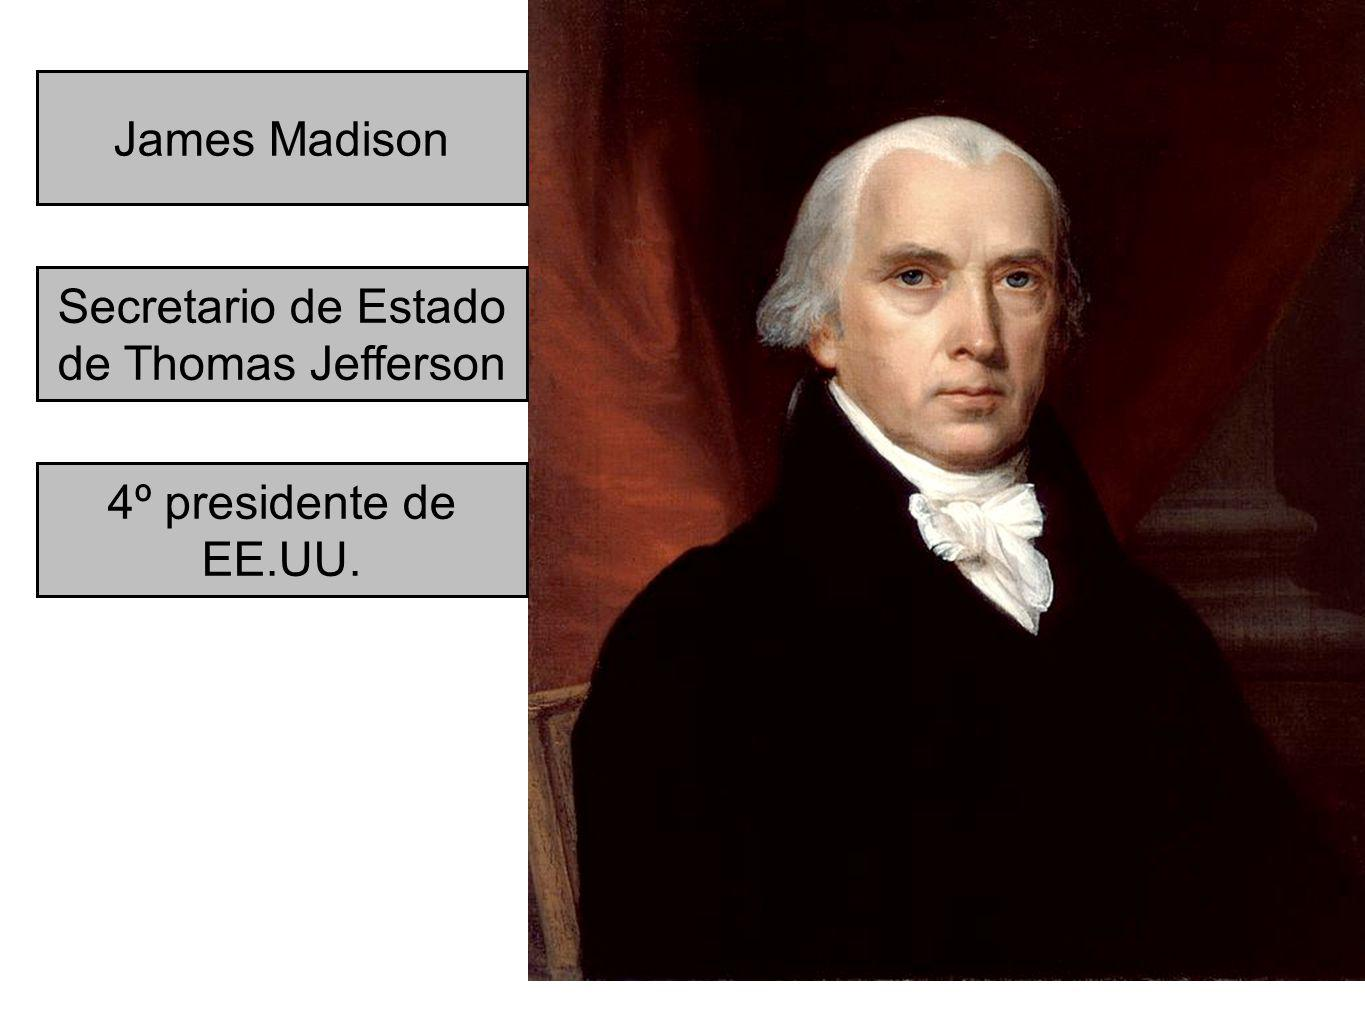 Secretario de Estado de Thomas Jefferson